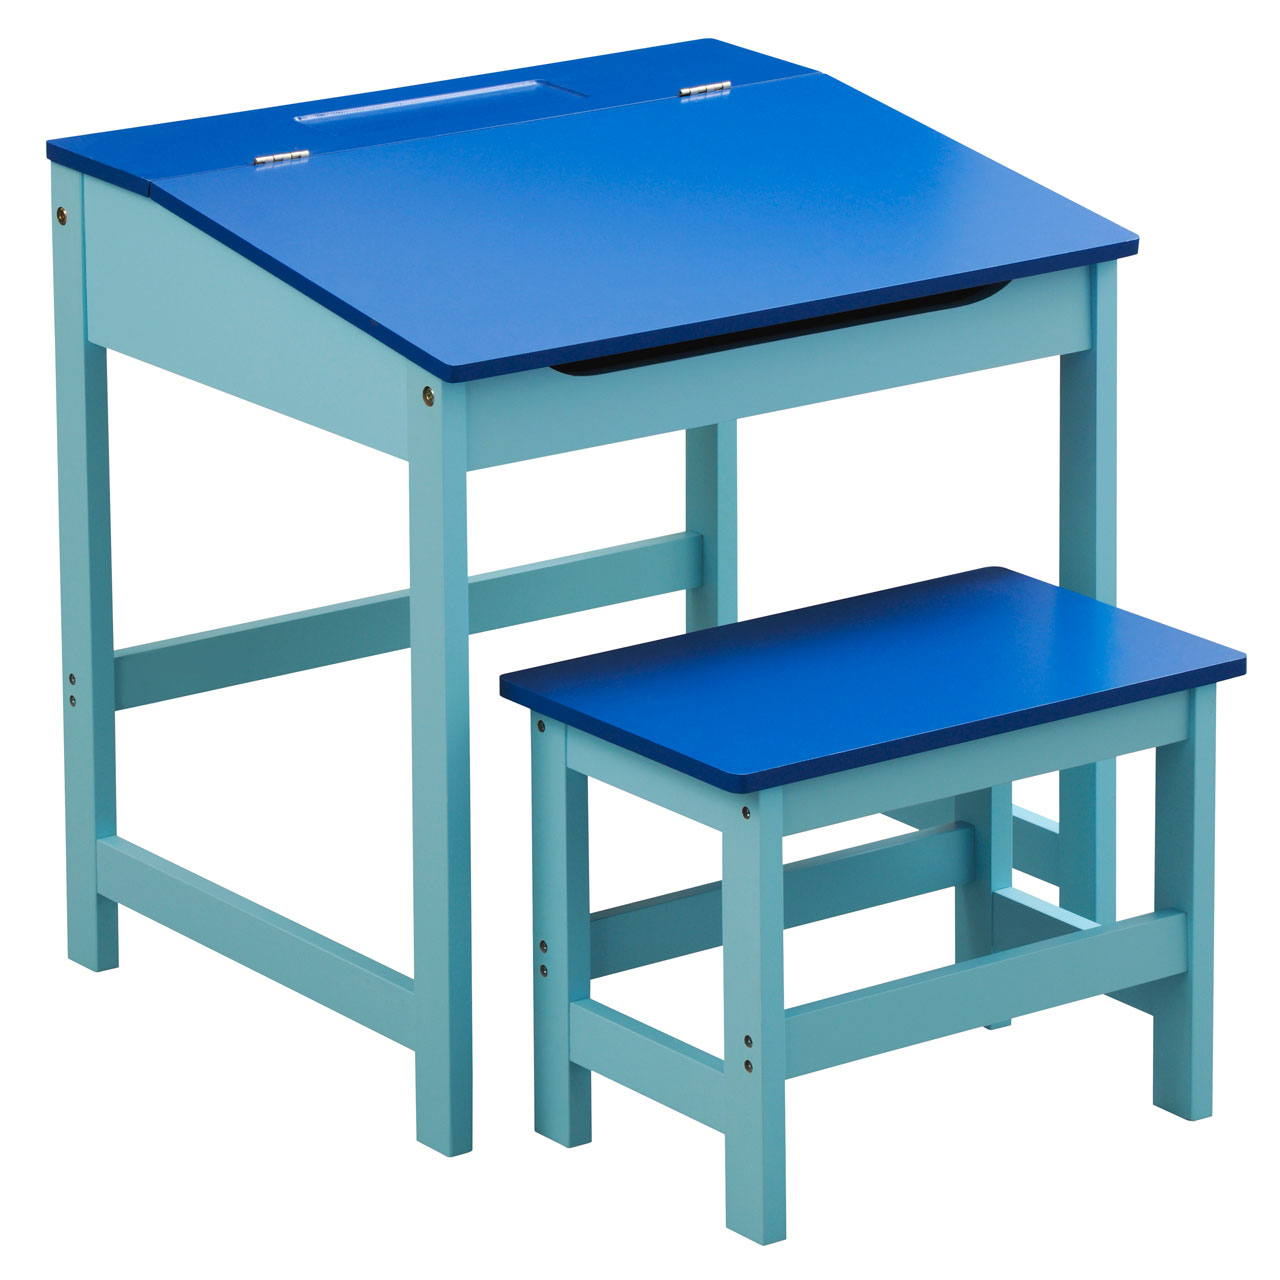 Children Desk and Chair Set 1280 x 1280